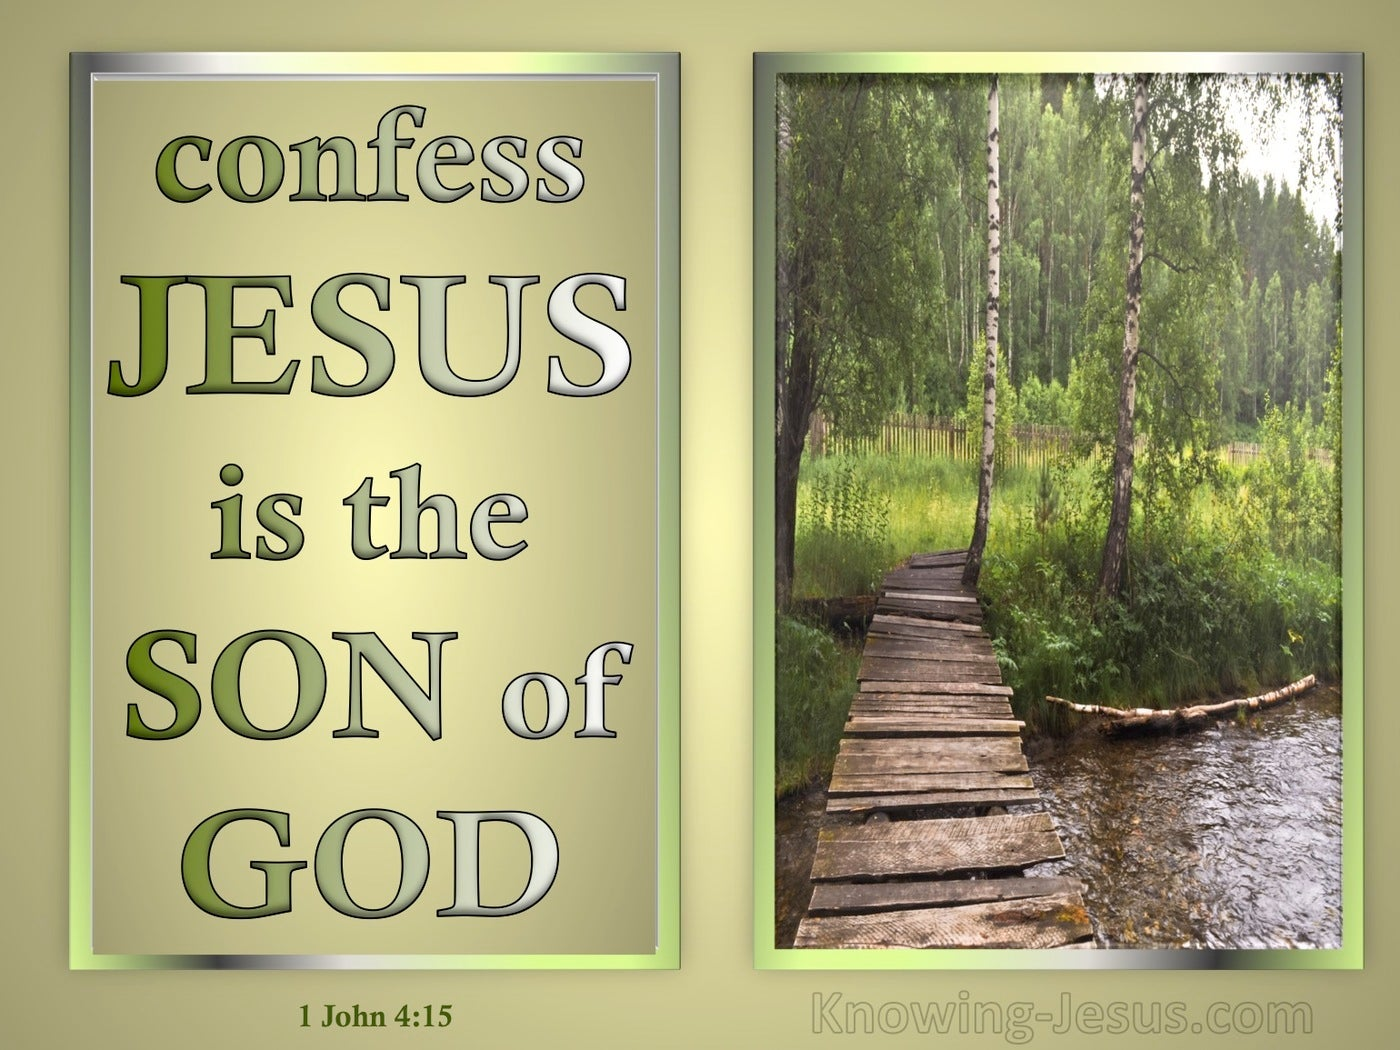 1 John 4:15 Jesus Is The Son Of God (gold)